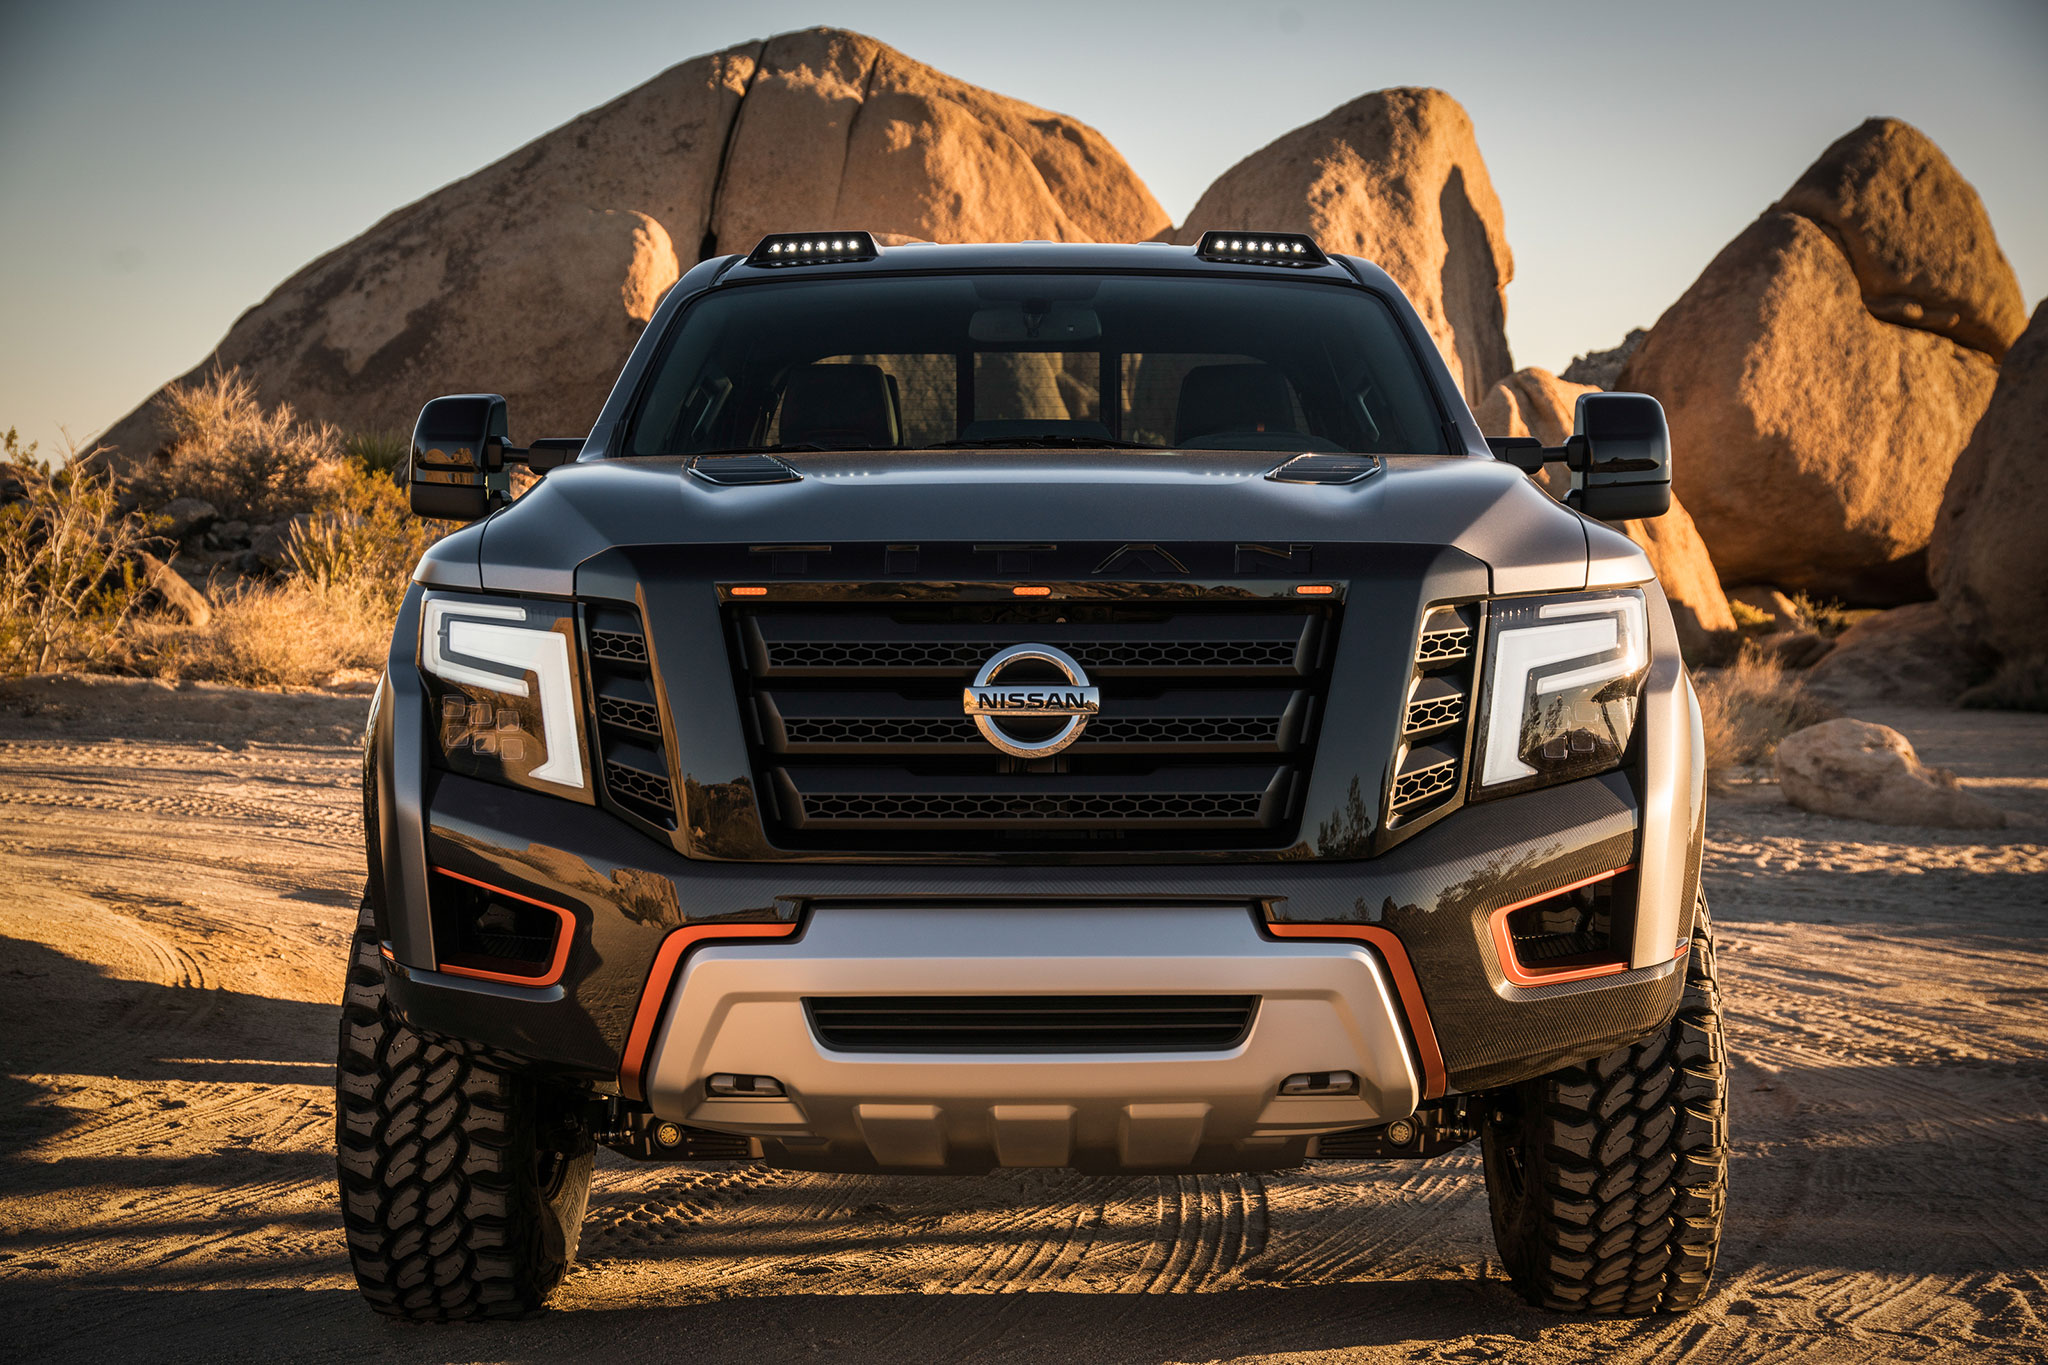 Nissan Titan Warrior Concept is an Off-Road Monster